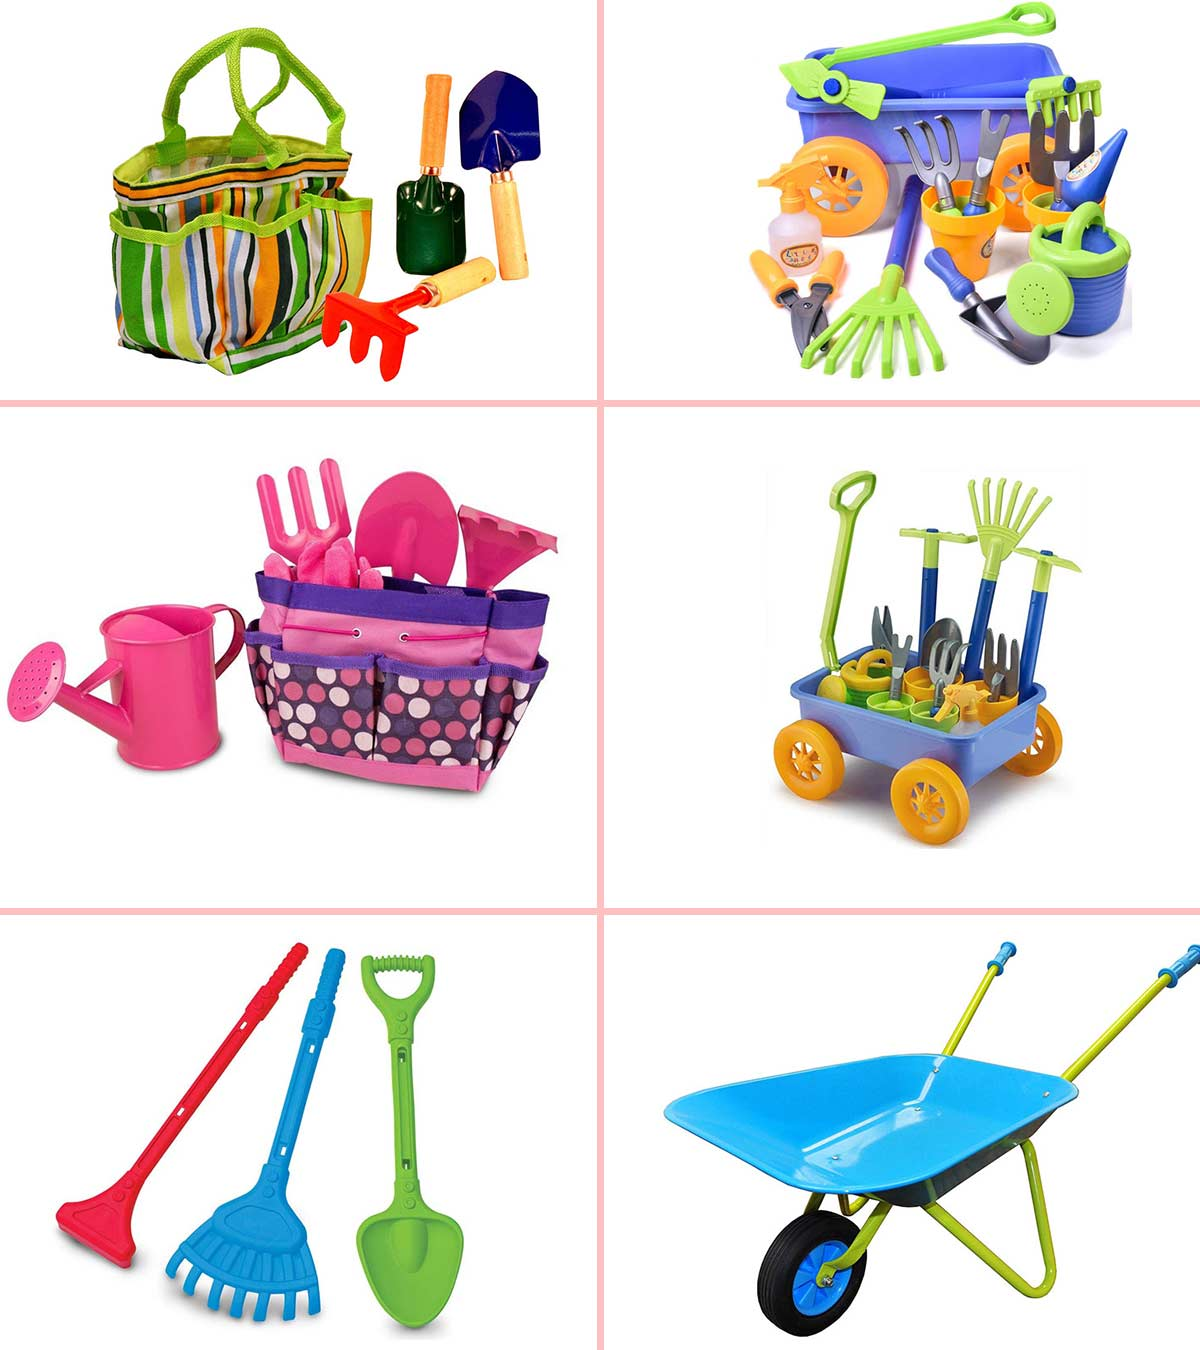 13 Kids Gardening Tools In 2020